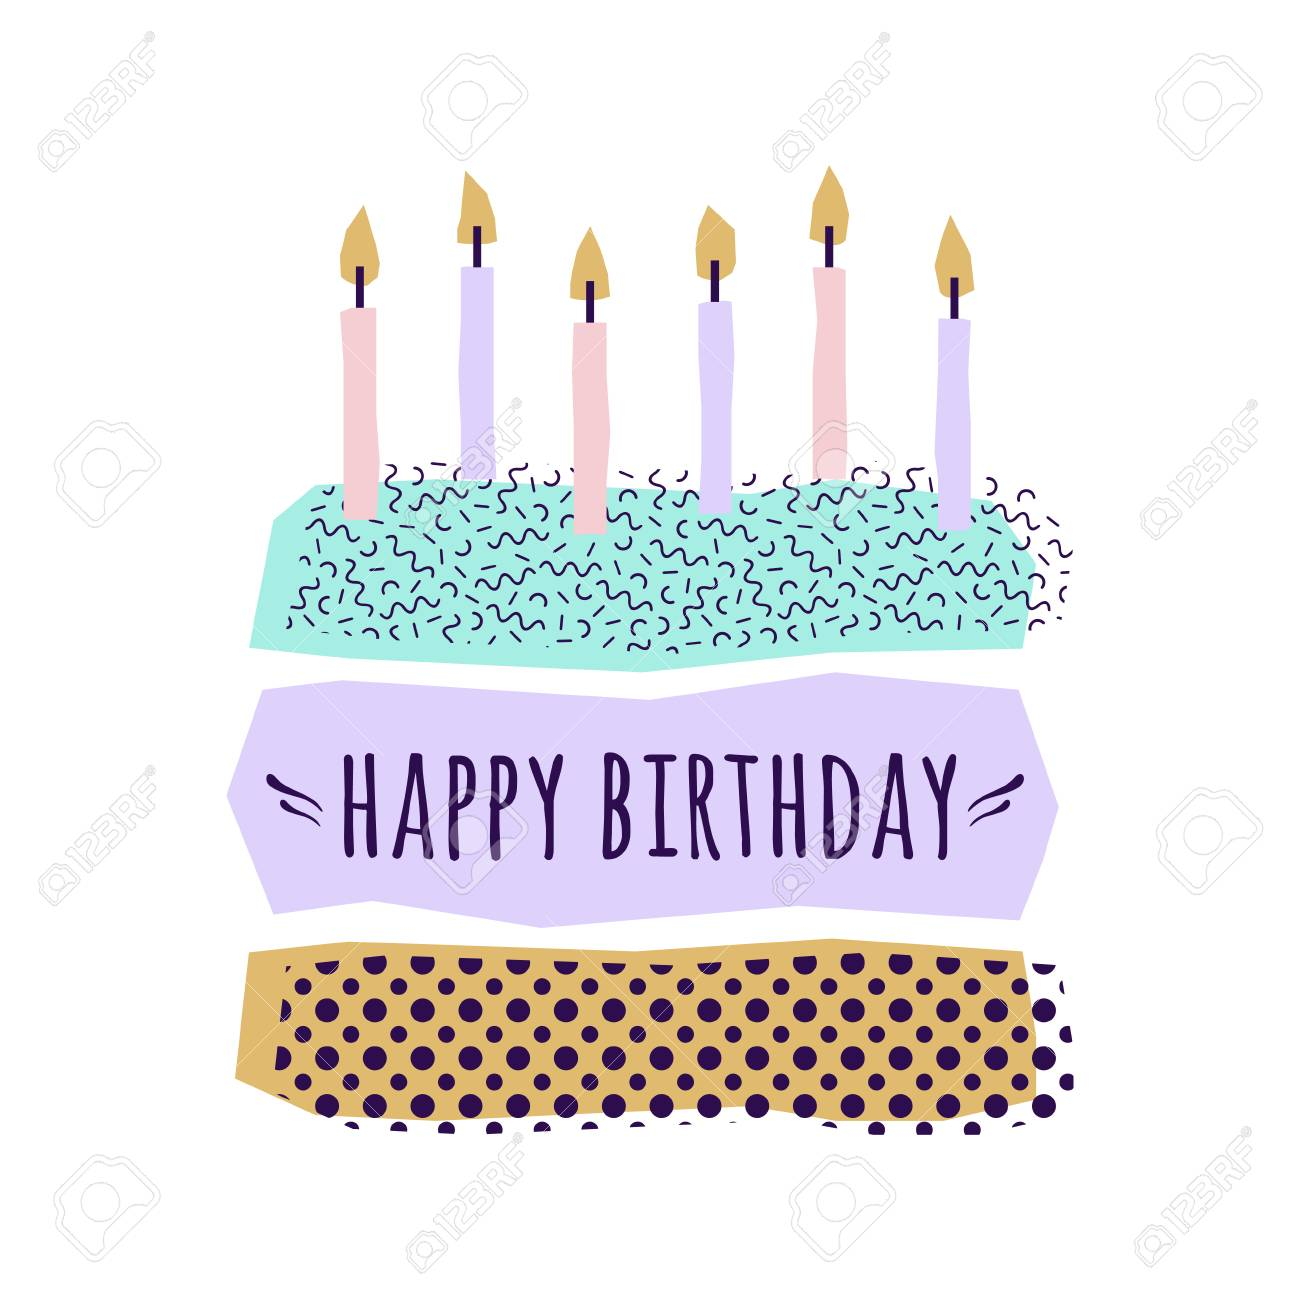 Vector Cute Happy Birthday Card With Cake Candles And Geometric